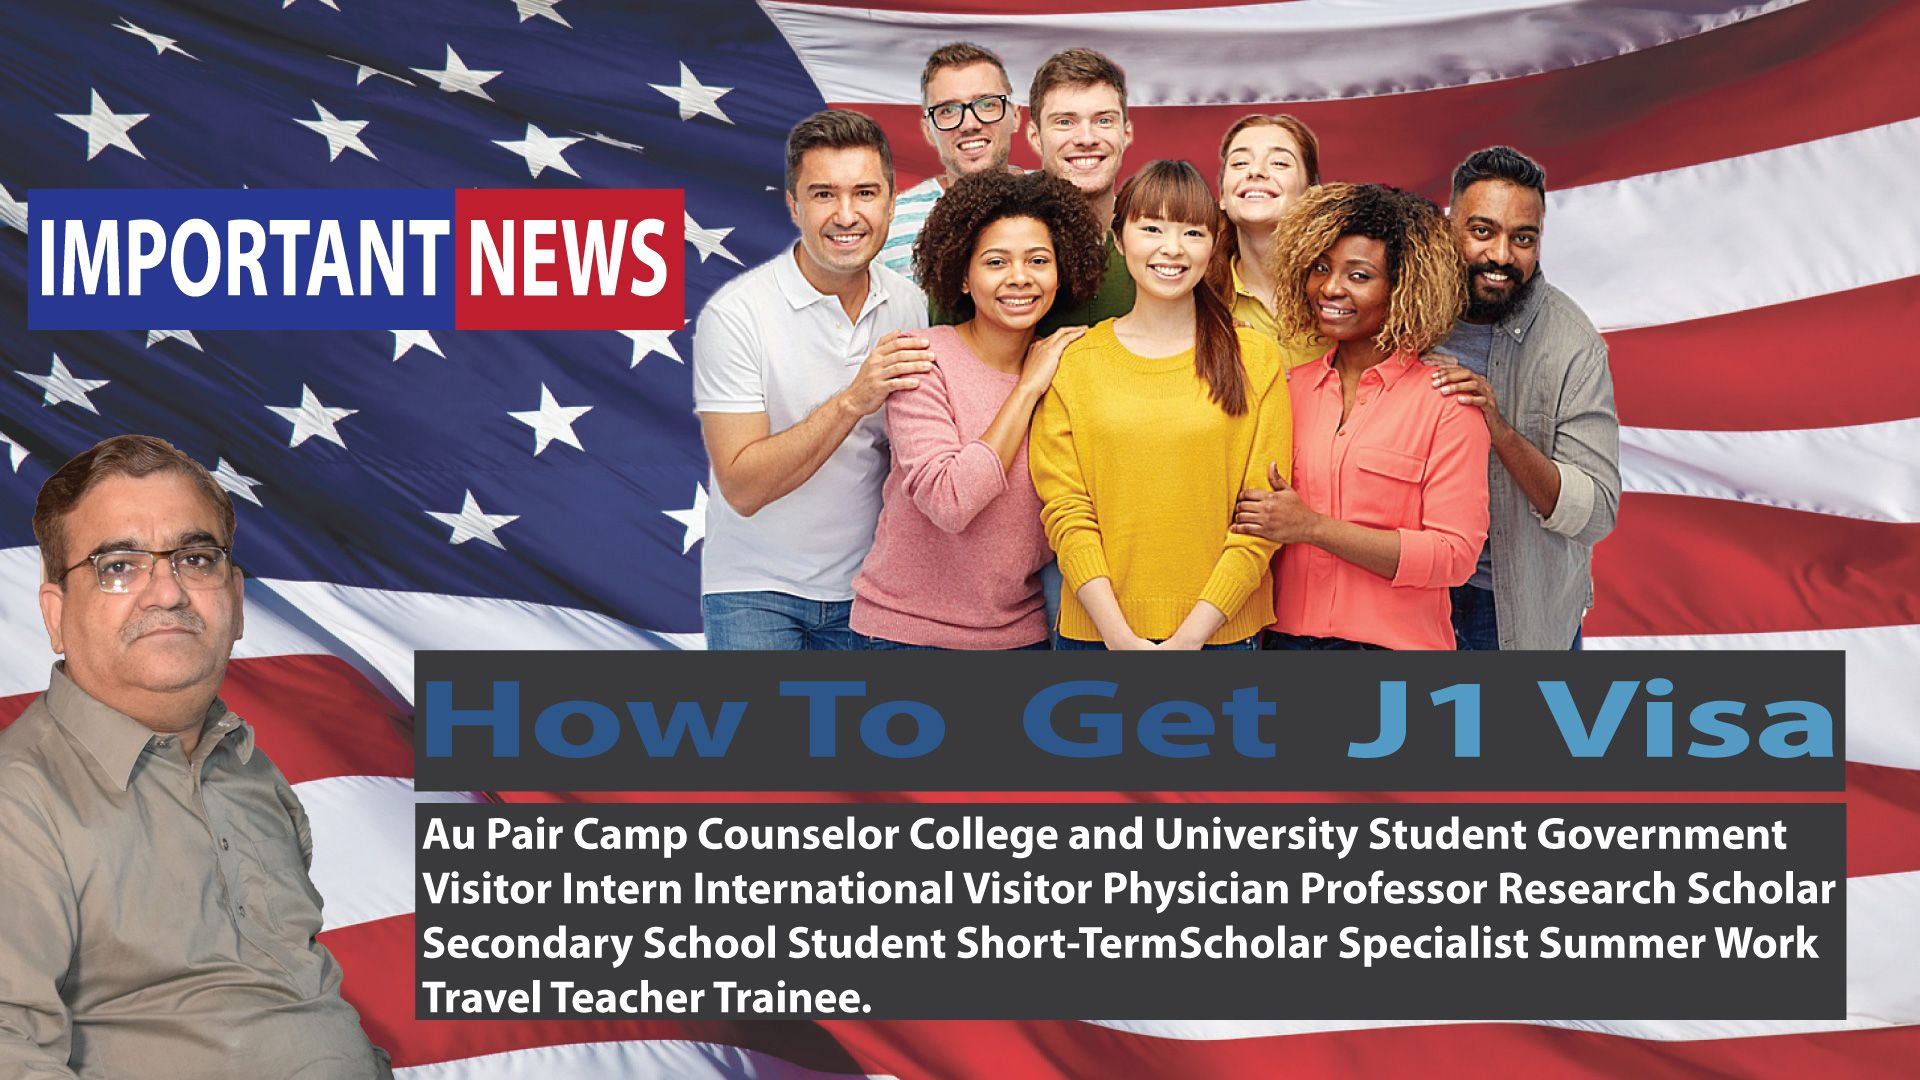 How to Get USA J1 Visa| USA Youth Exchange Program Visa|